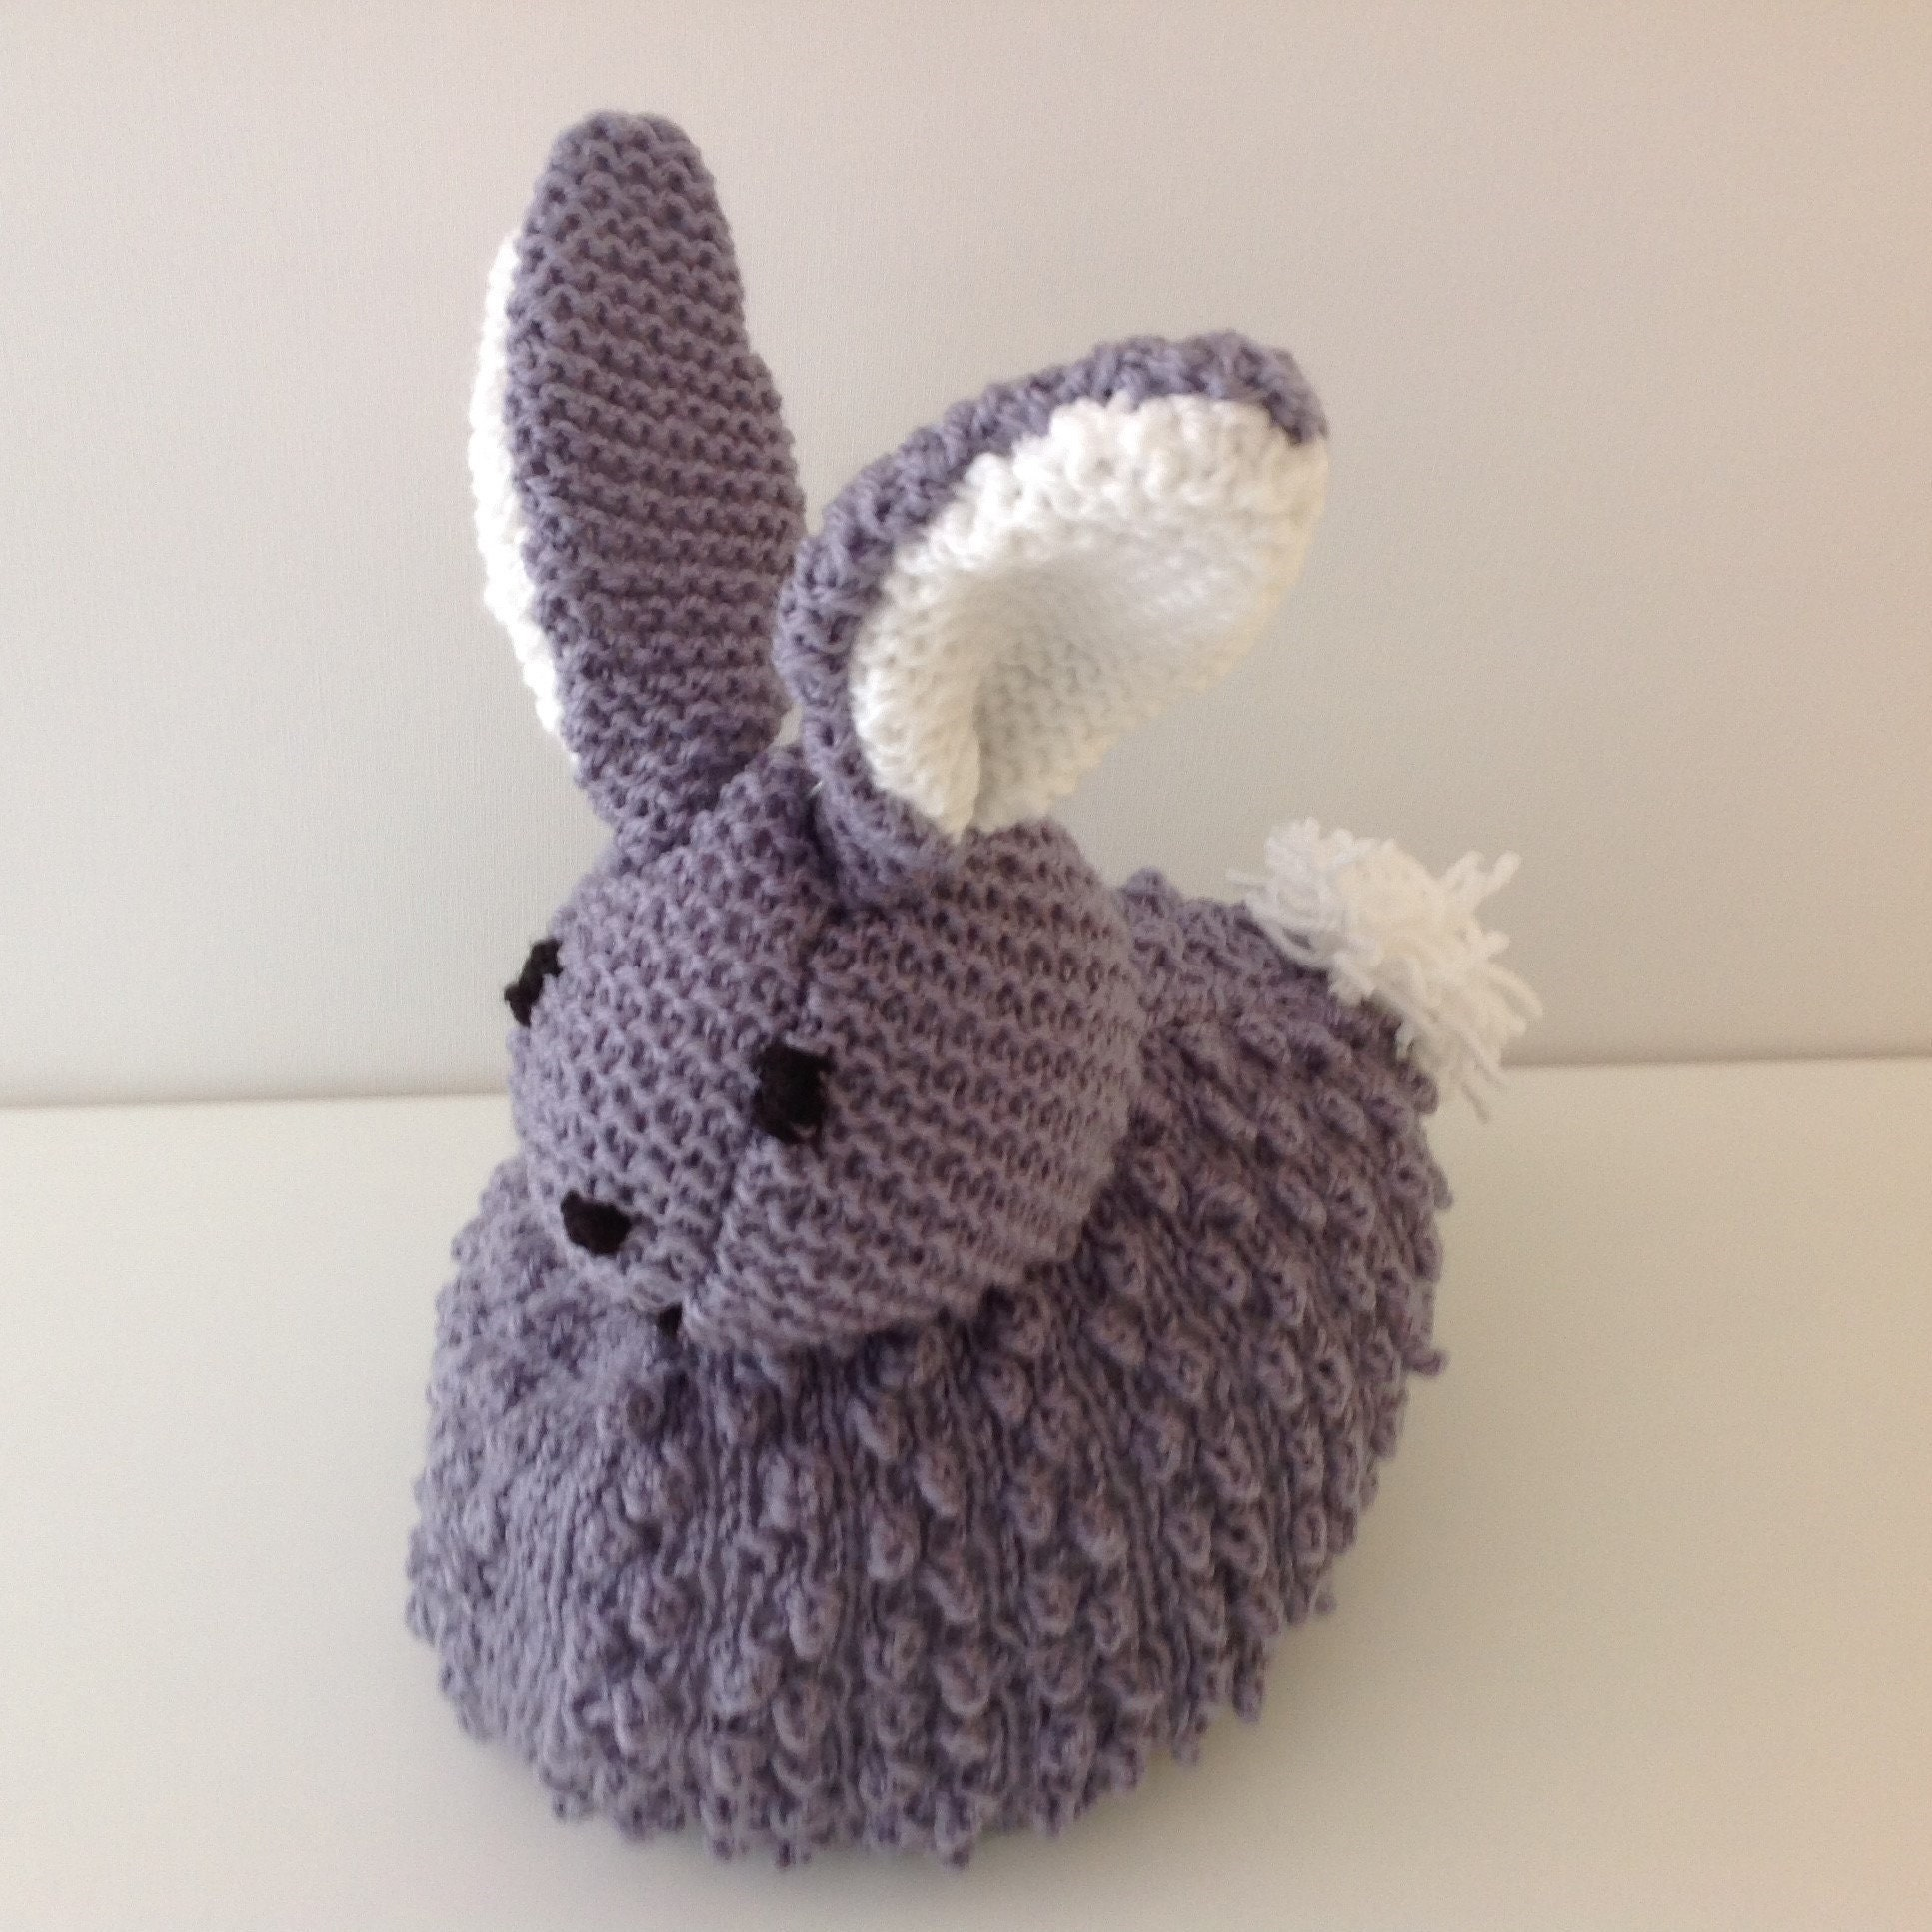 Peter rabbit doorstop knitting pattern easter knitting pattern peter rabbit doorstop knitting pattern easter knitting pattern handmade bunny pattern knitted gift download pdf negle Images